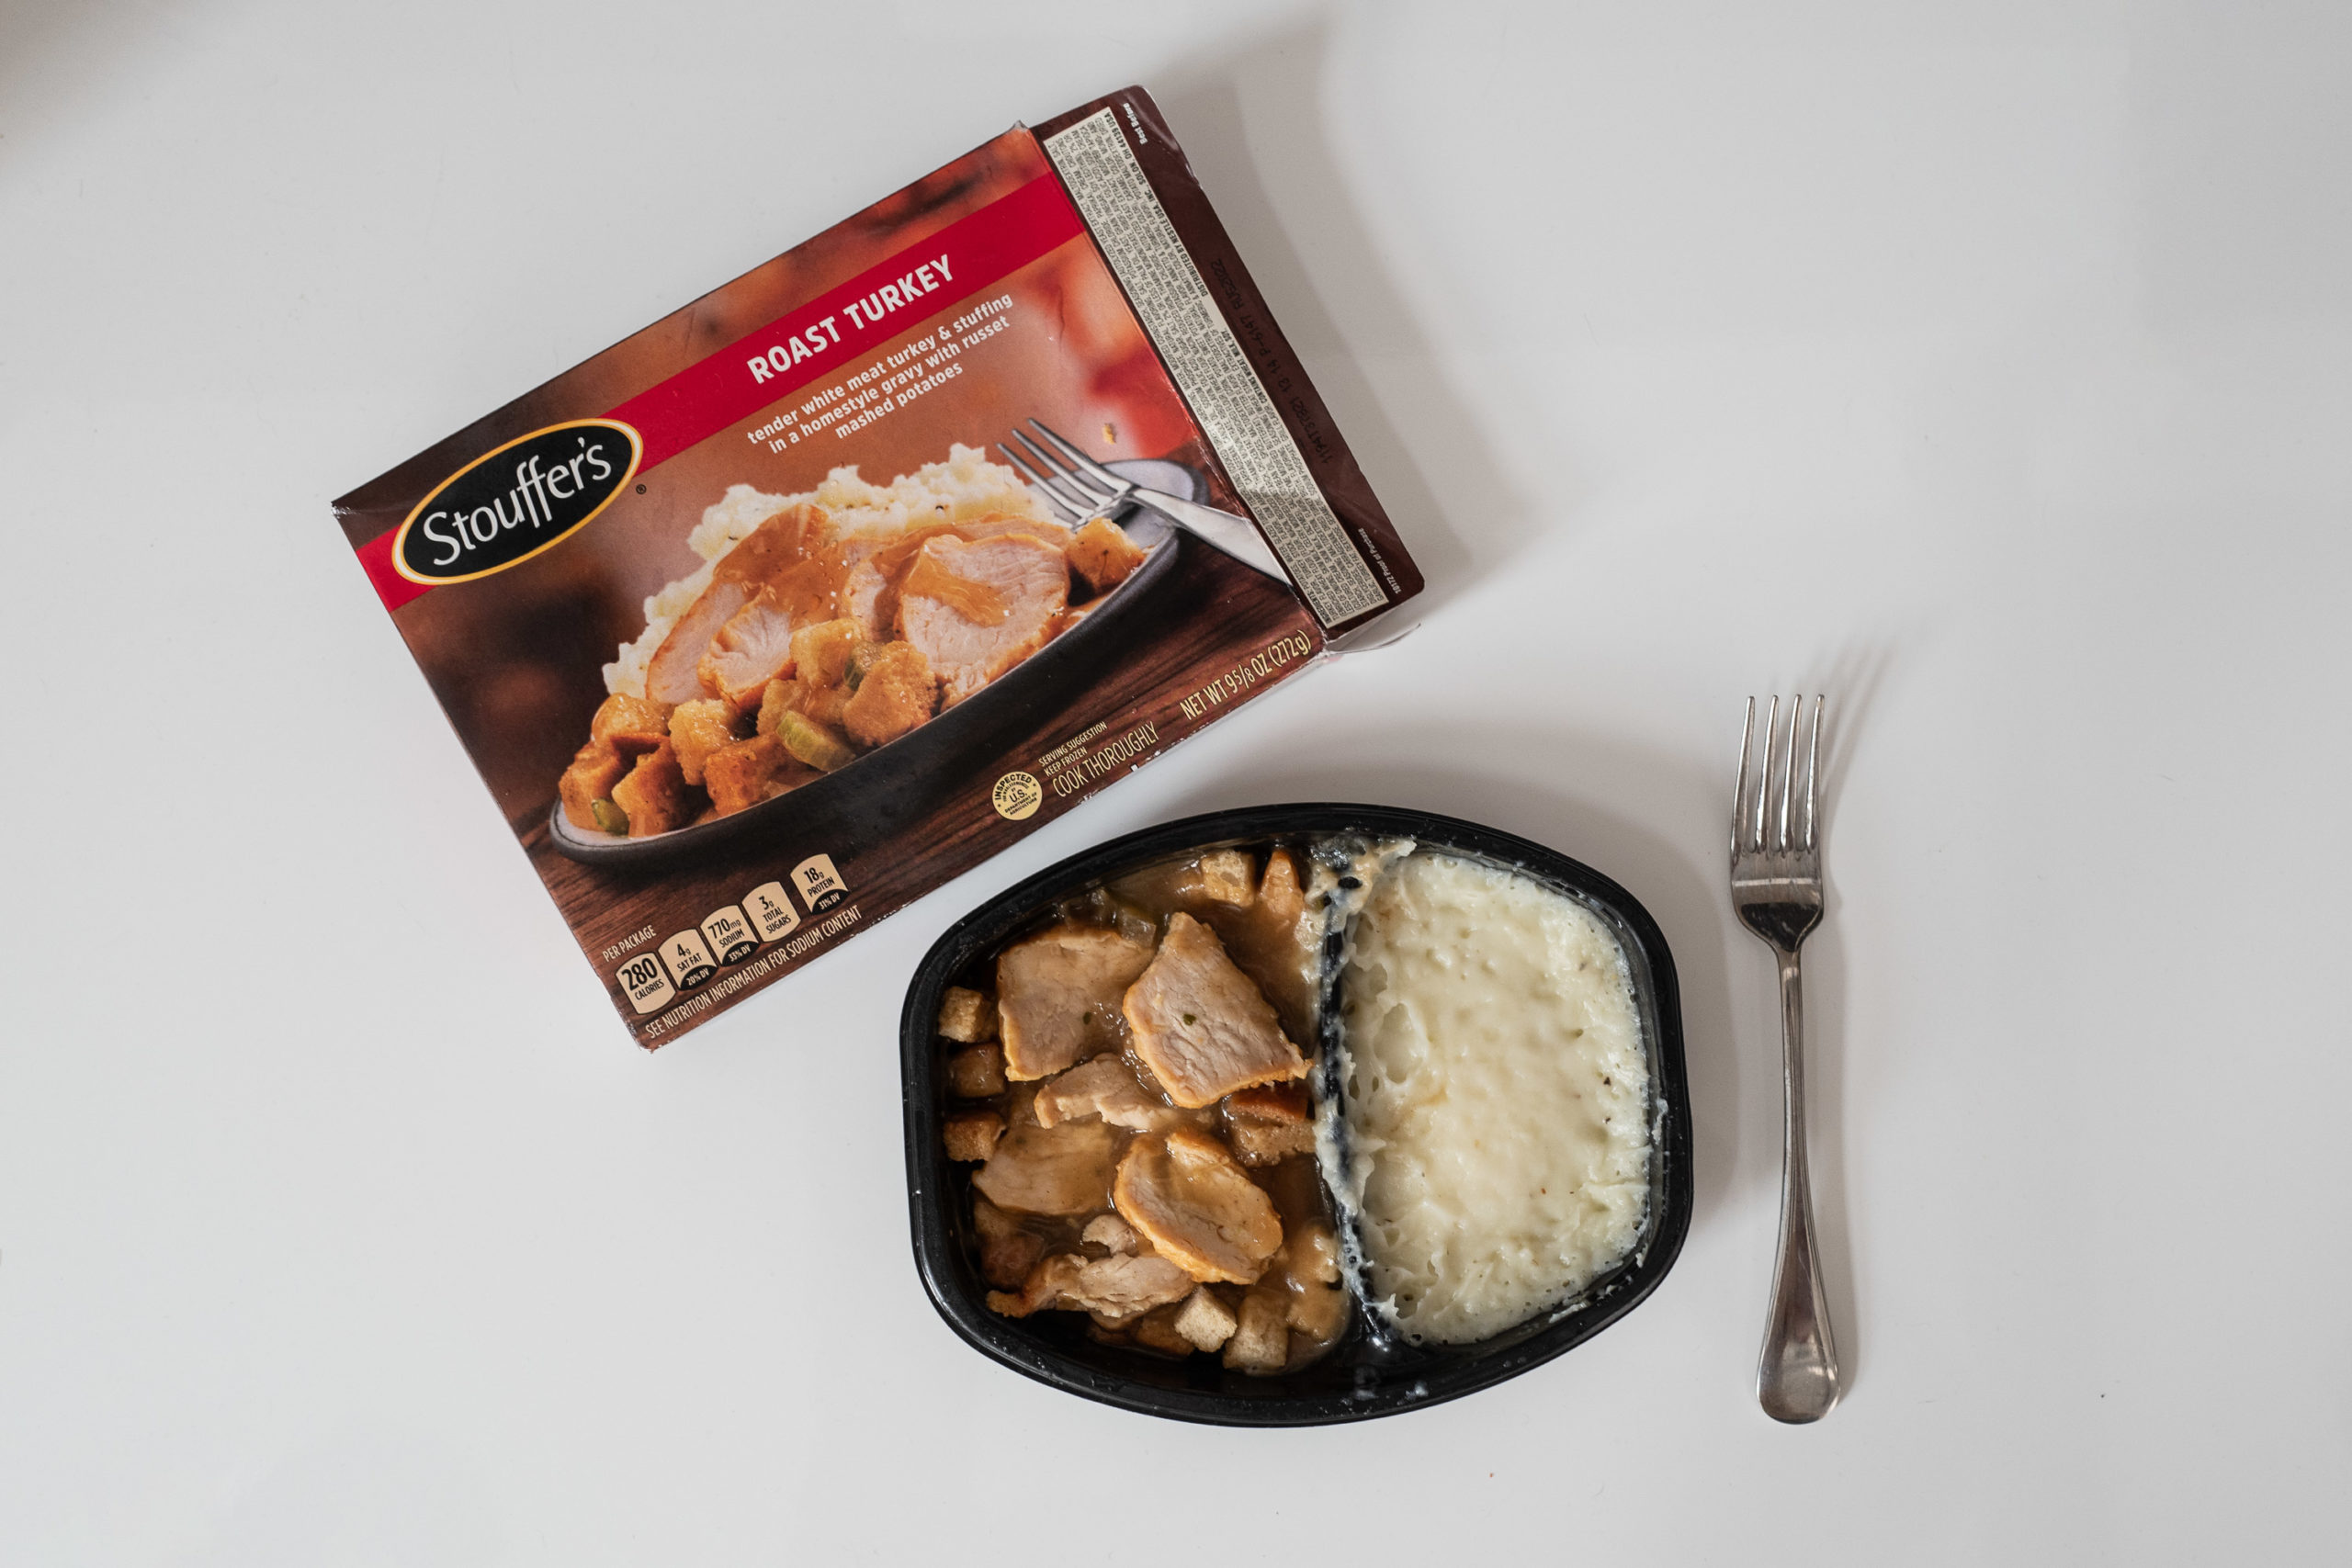 A cooked frozen meal of turkey and mashed potatoes next to the box it came in.